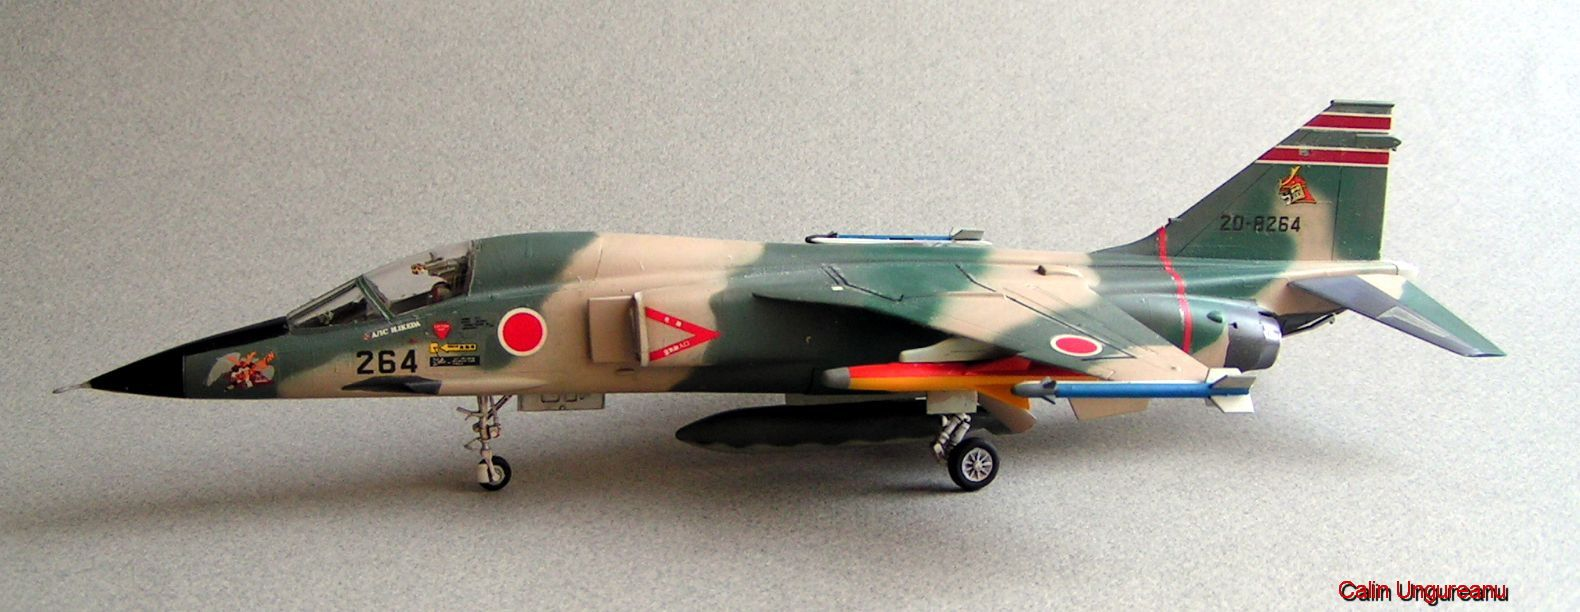 Mitsubishi F1 Hasegawa 1 72 Model Airplanes Fighter Jets Fighter